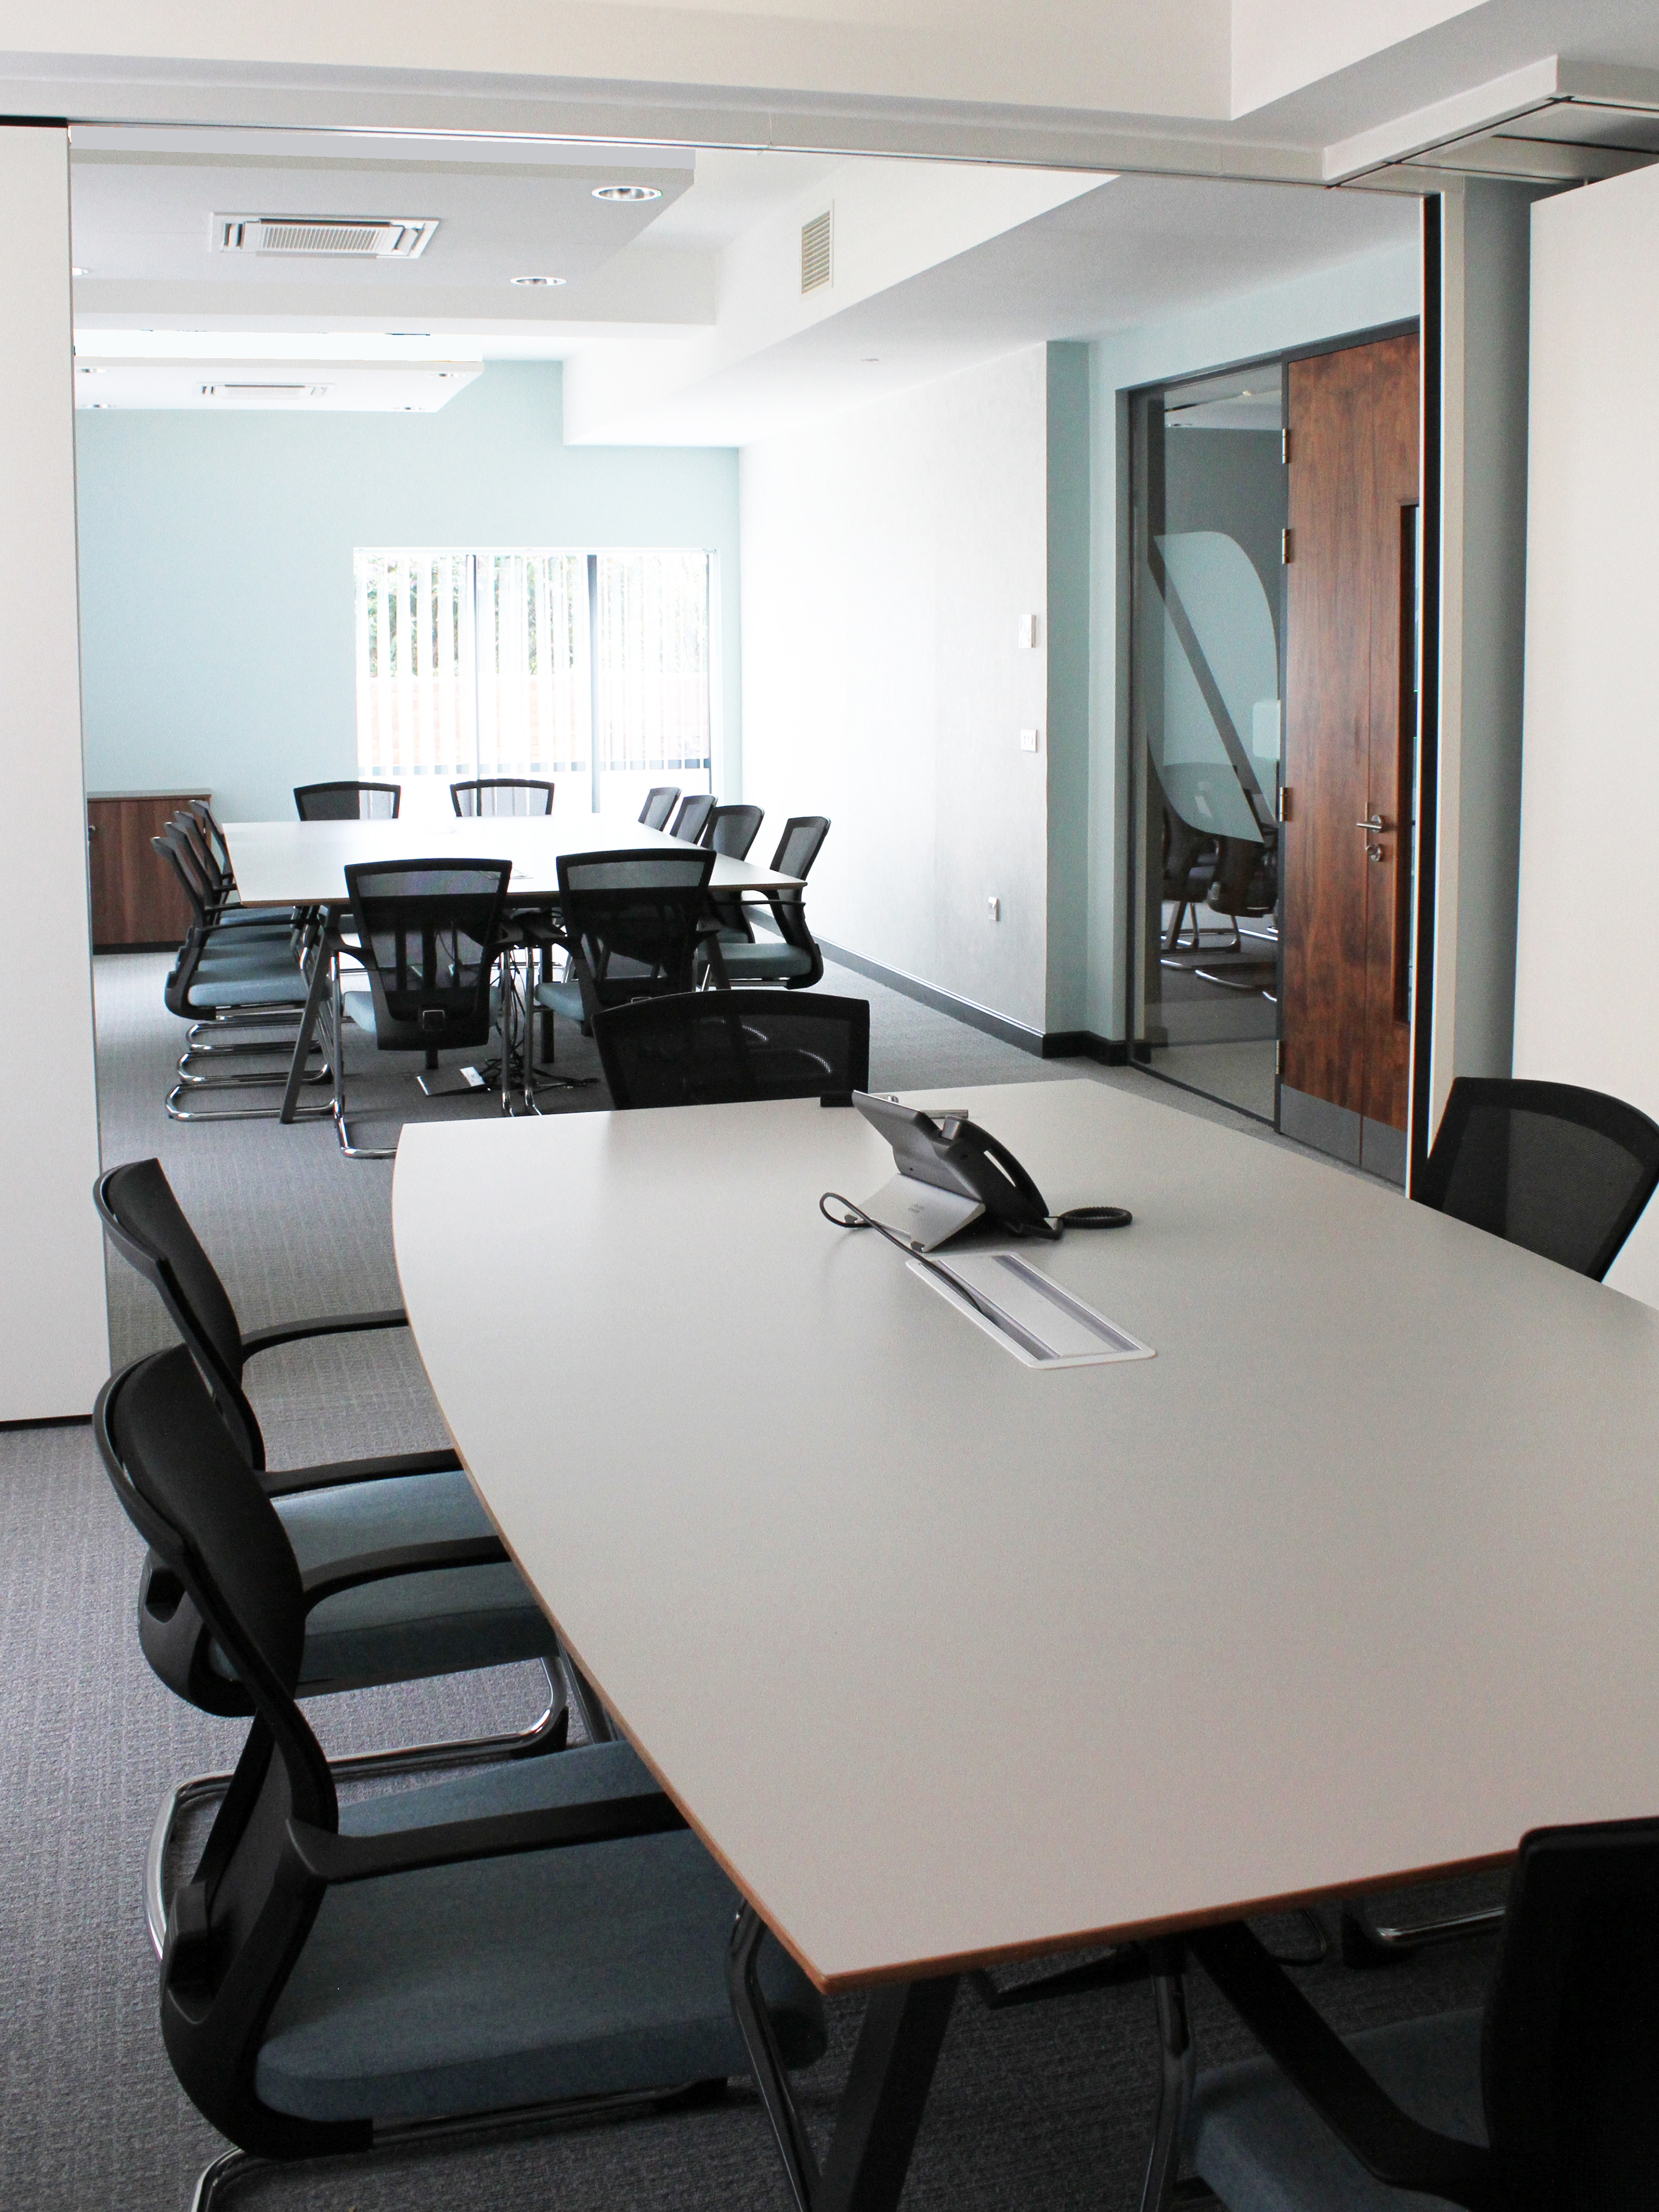 Porter Dodson Solicitors Meeting Room Interior